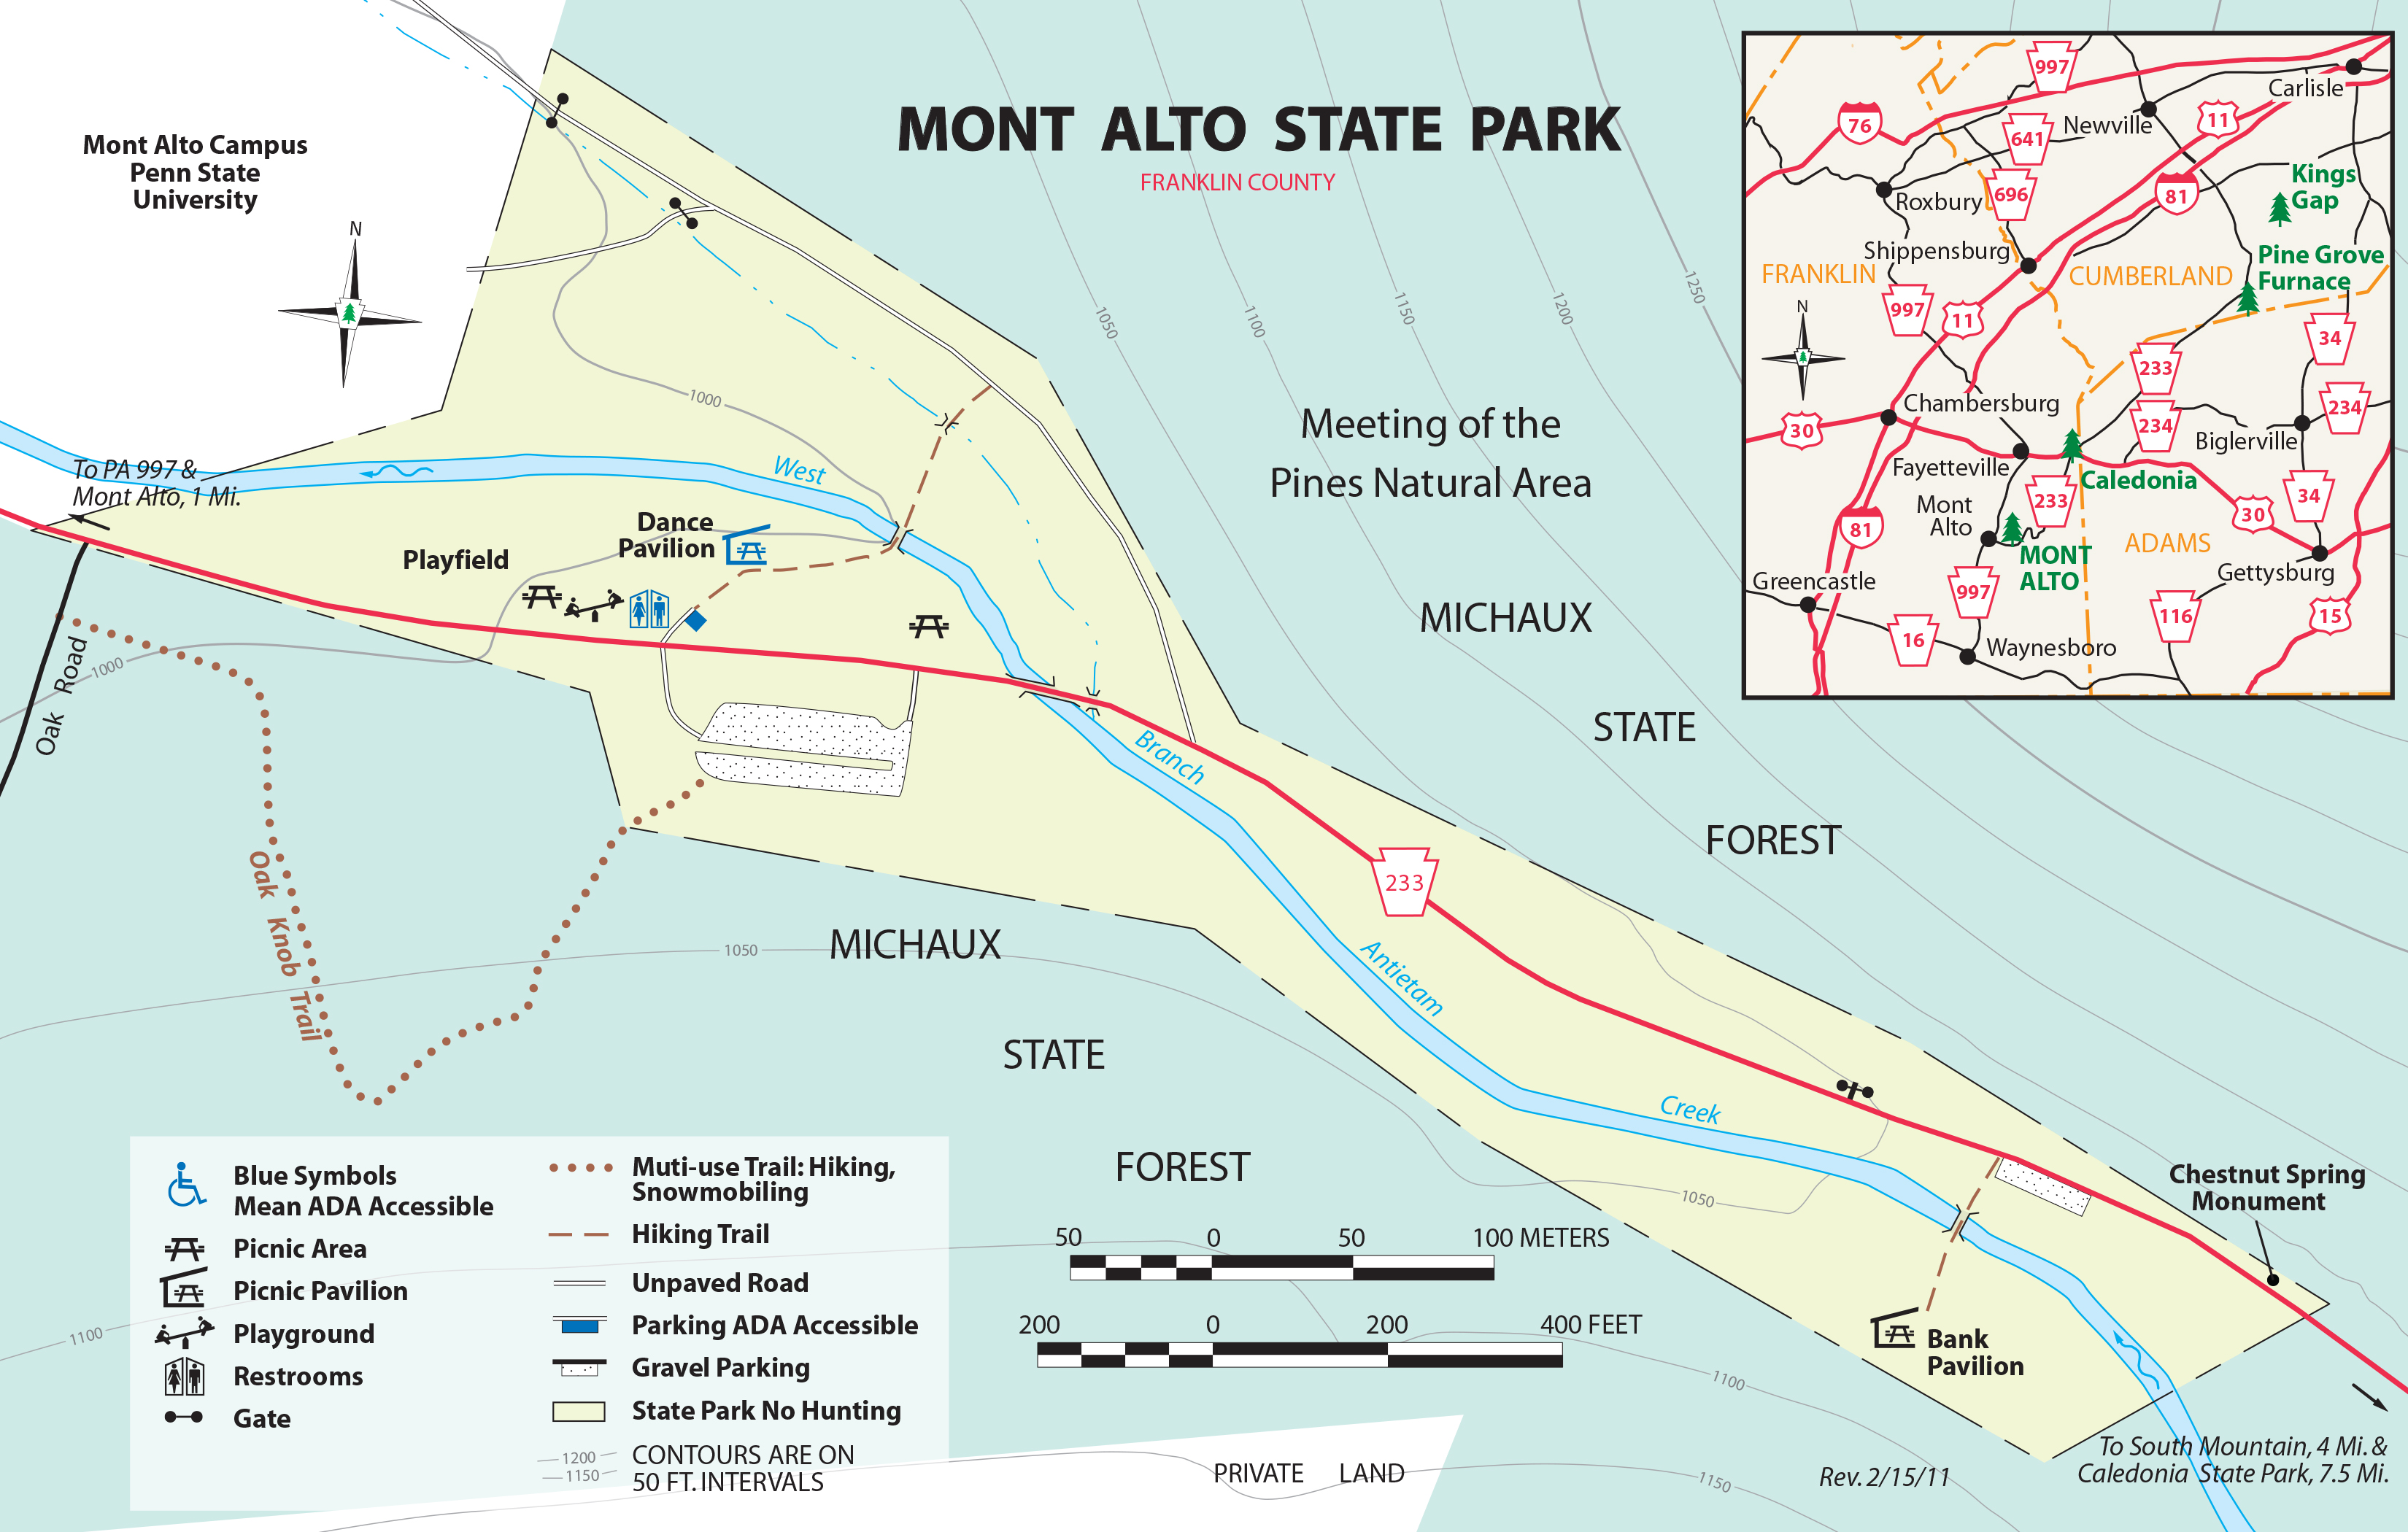 Mont Alto State Park - Paddle the Potomac Codorus State Park Map on sinnemahoning state park map, joseph davis state park map, whipple dam state park map, cedars of lebanon state park map, boiling springs state park map, hyrum state park campground map, fairview state park map, ochlockonee river state park map, prompton state park map, hyner view state park map, cowans gap state park map, shikellamy state park map, st. george island state park map, erving state forest map, confluence state park map, hudson mills metropark map, jarrell cove state park map, erie bluffs state park map, kettle creek state park map, lake waramaug state park map,